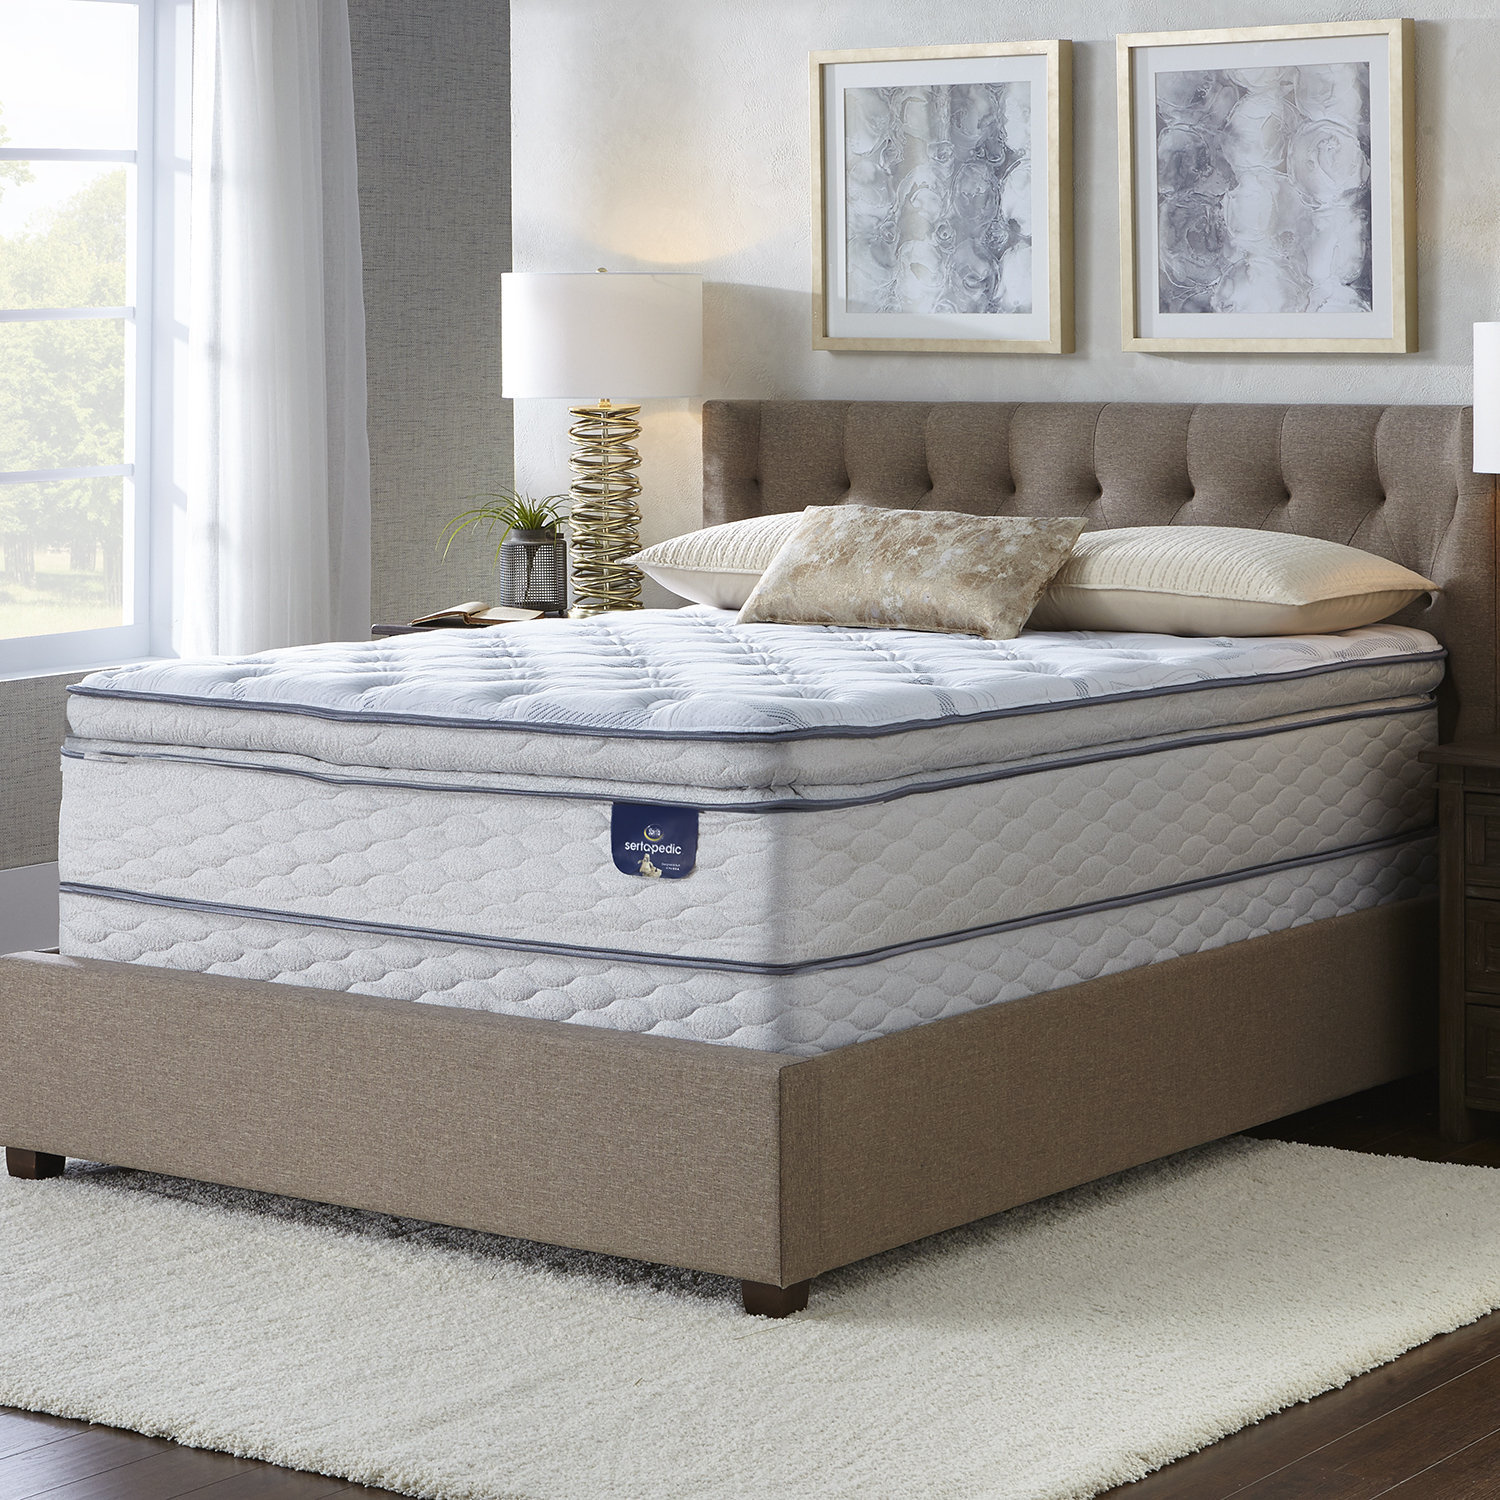 pdx medium wayfair mattress topper simmons recharge pillow mattresses top reviews beautyrest